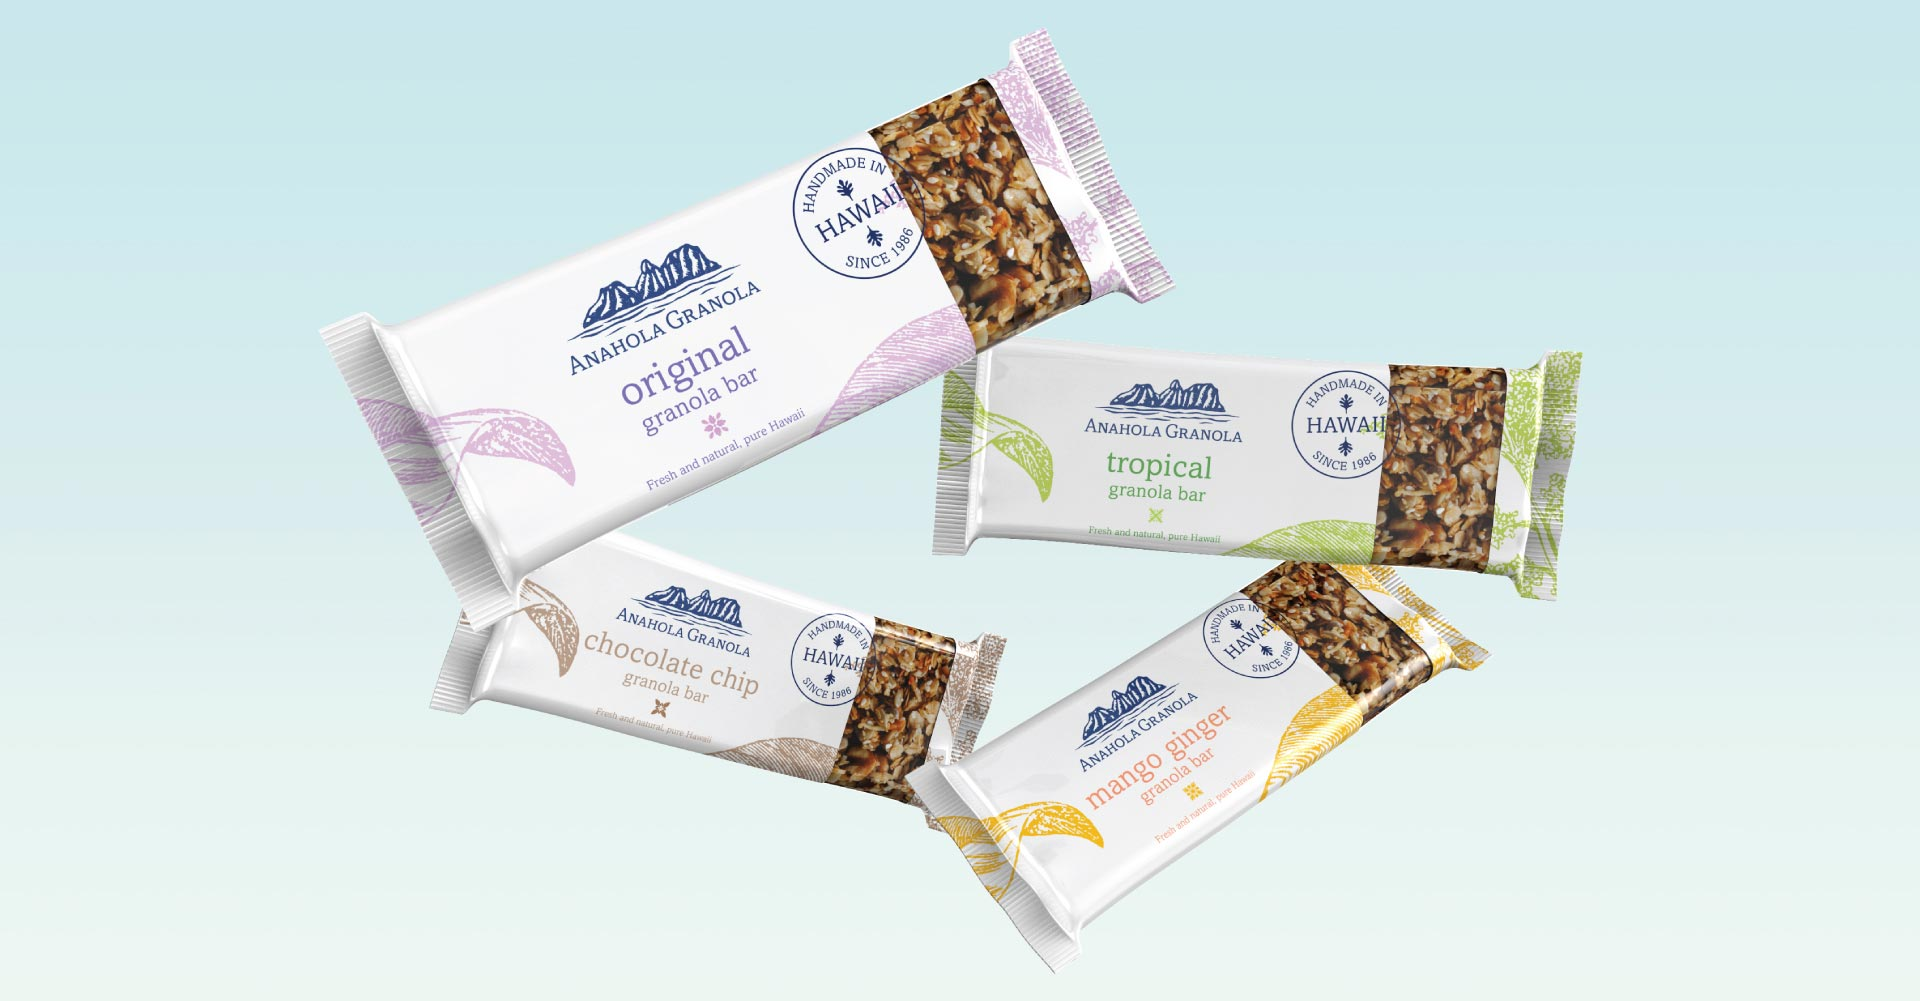 Creative_Retail_Packaging_Branding_Identity_Package_Design_AnaholaGranola_12.jpg